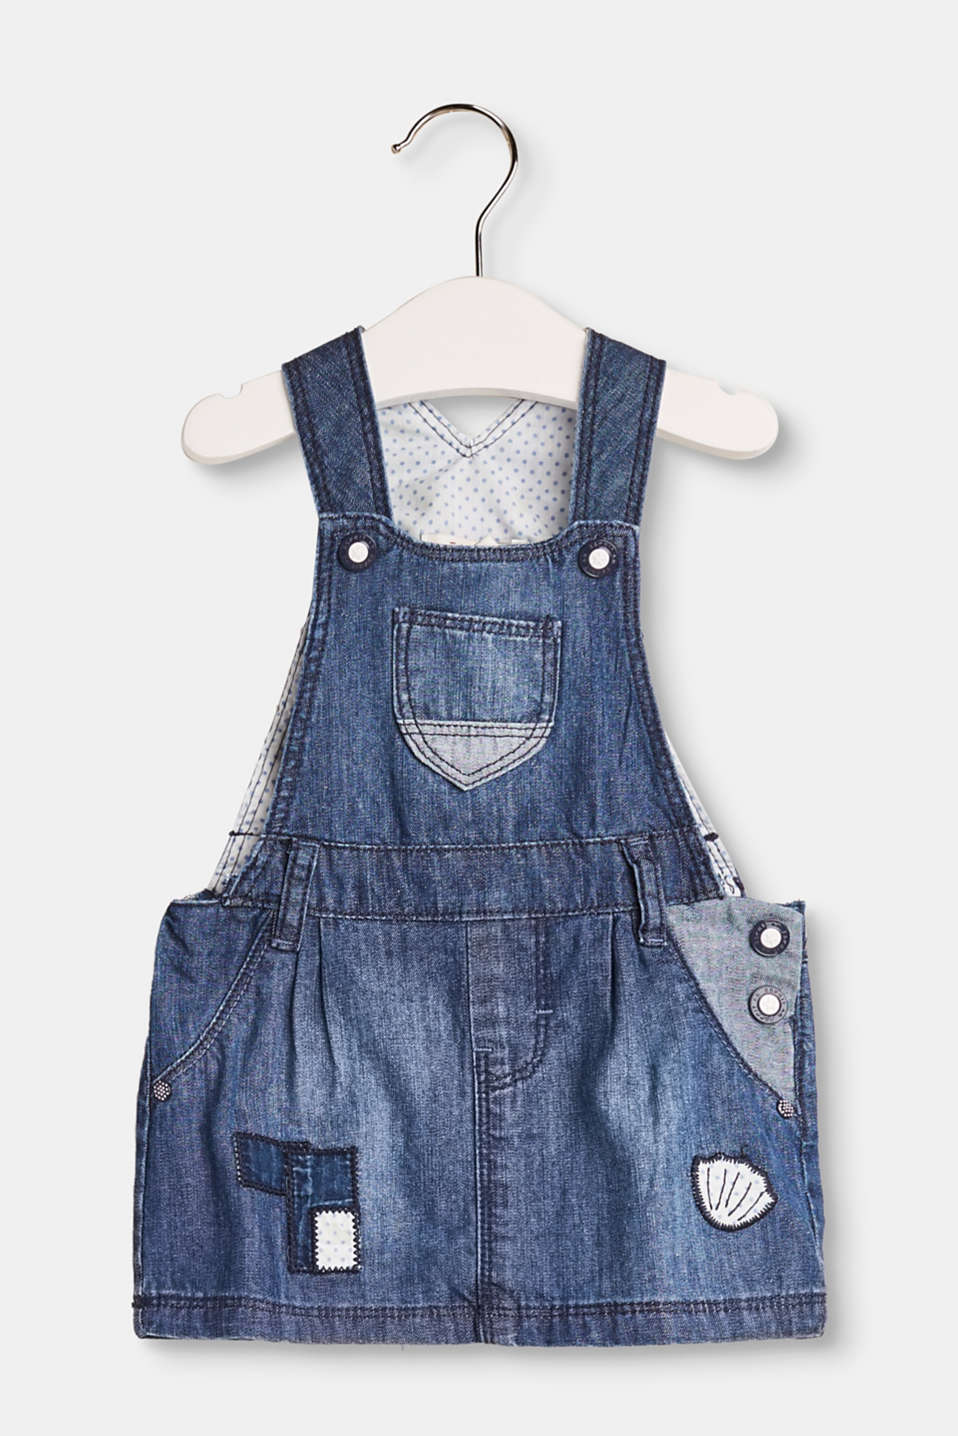 Esprit - Cute cotton denim dungaree dress